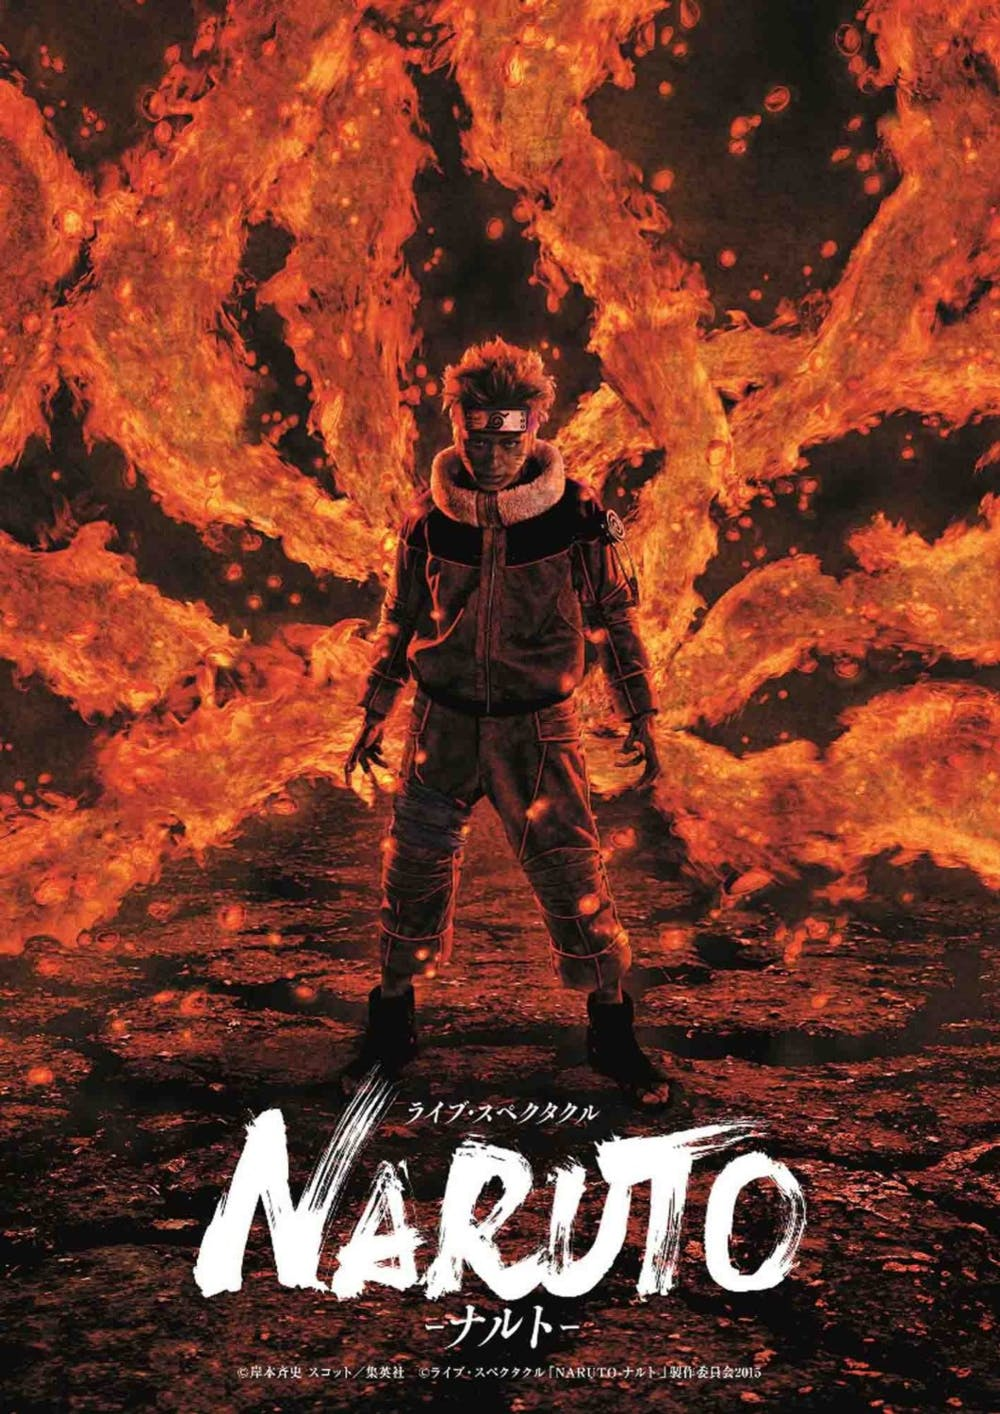 Poster for Live Spectacle Naruto